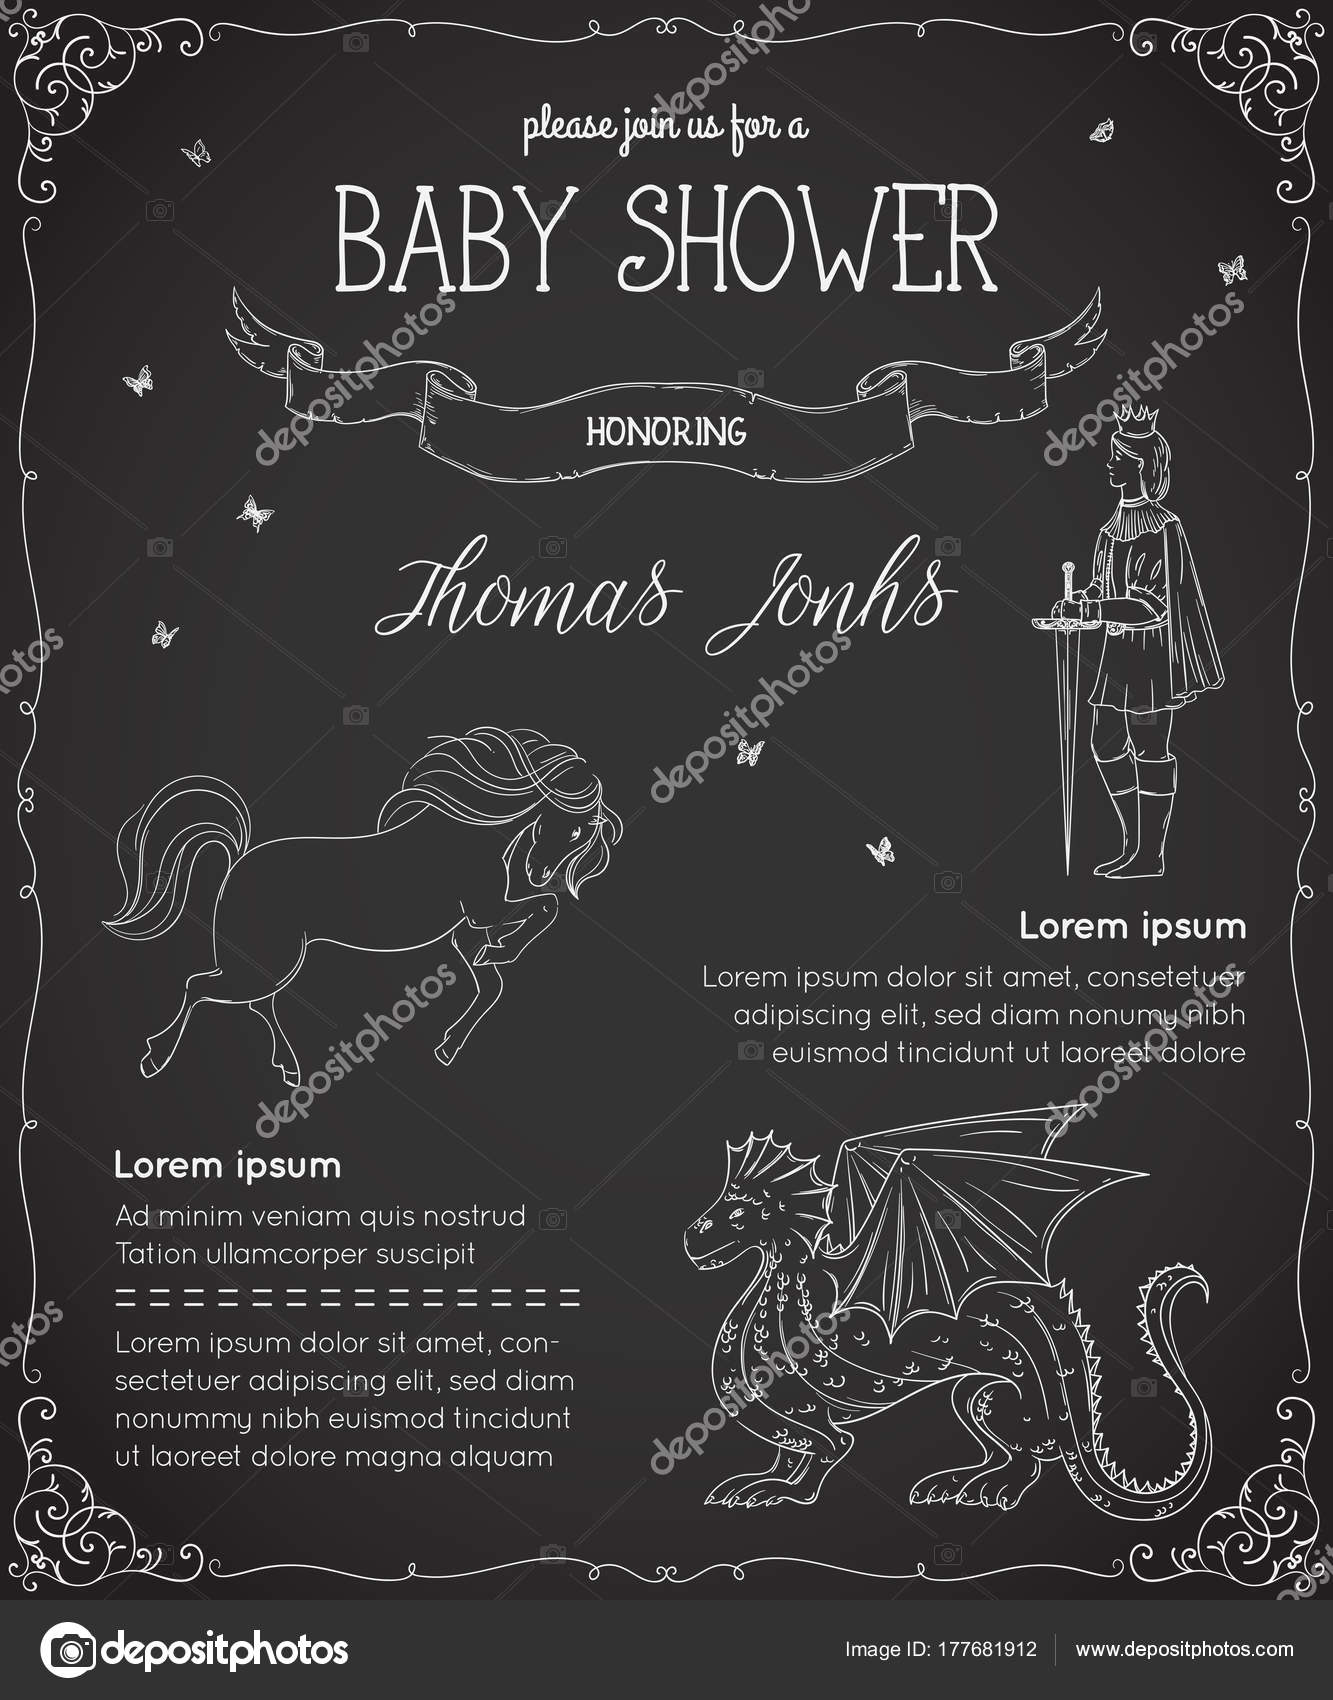 Baby Shower Invitation Prince Dragon Horse Butterflies Fairy Tale ...